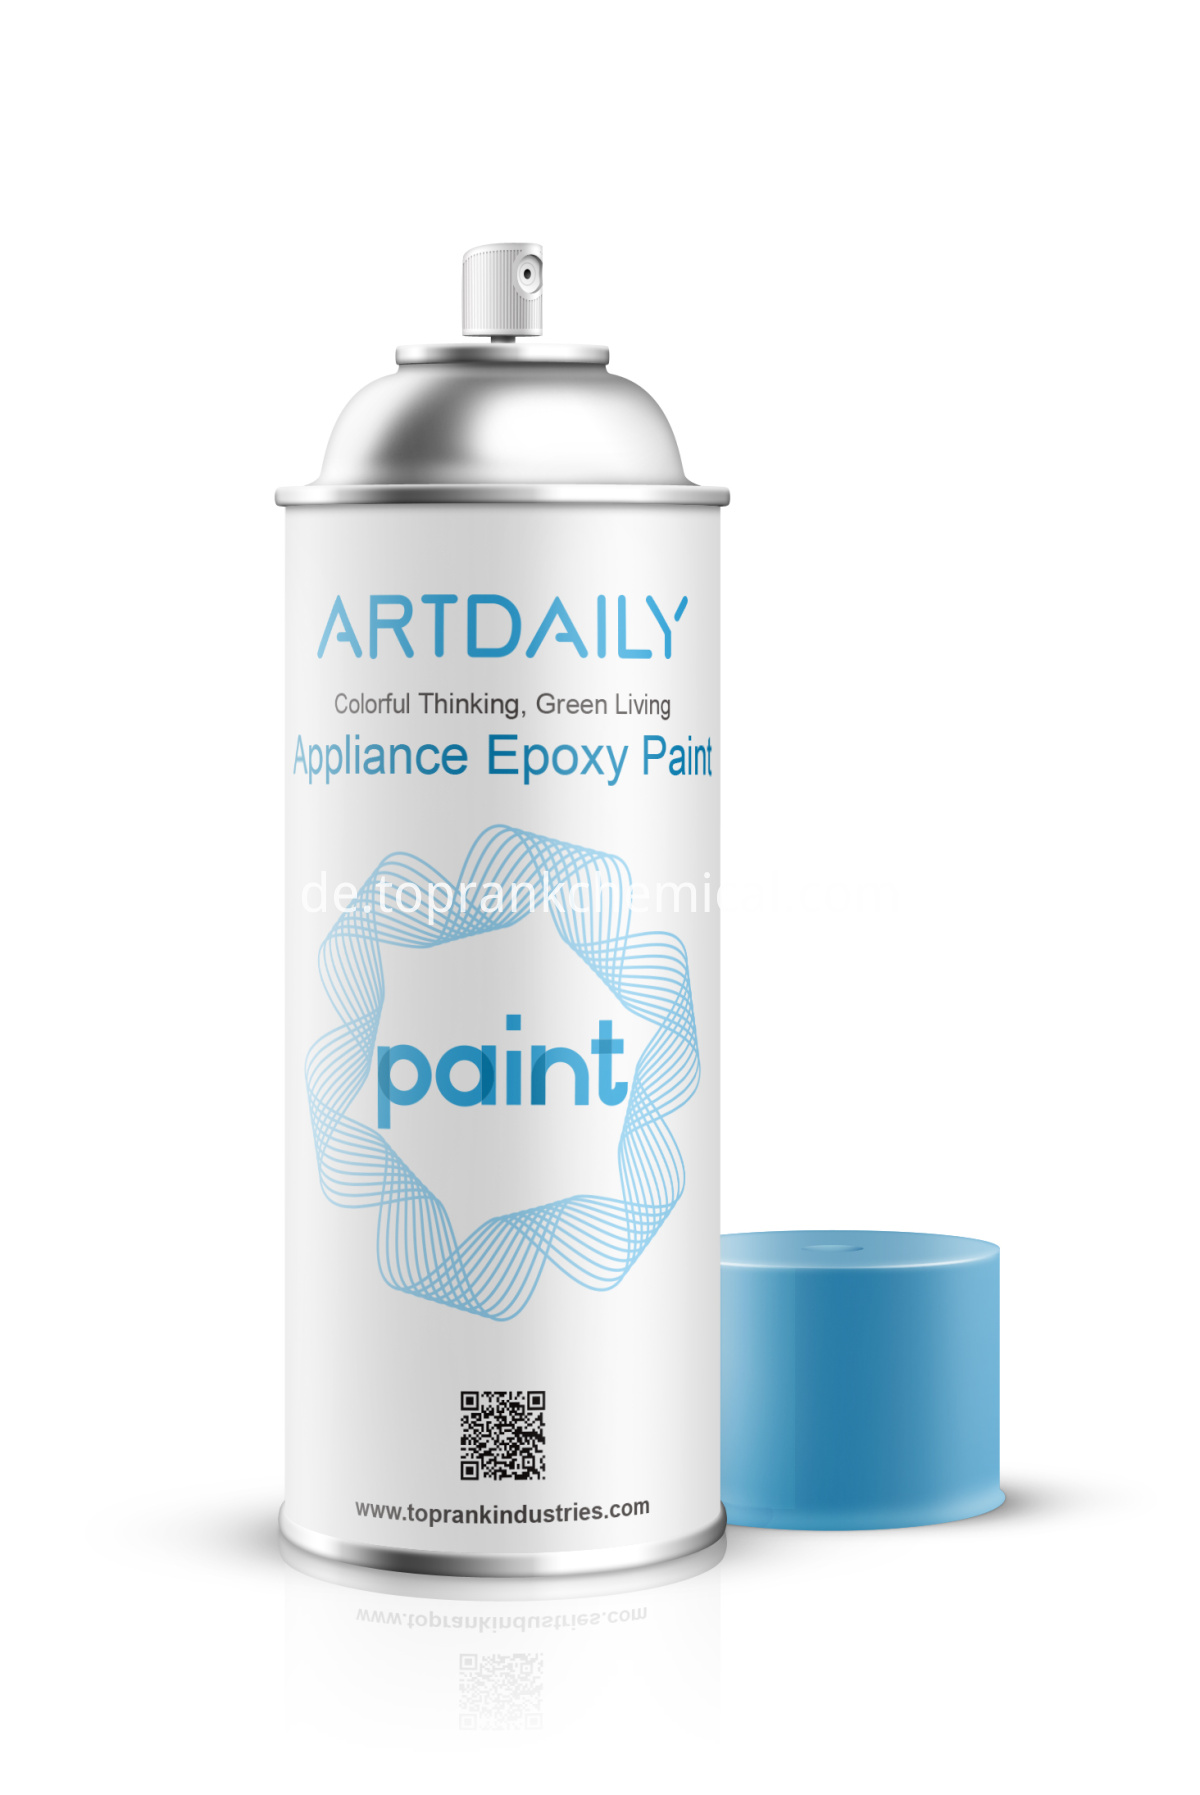 appliance epoxy panit